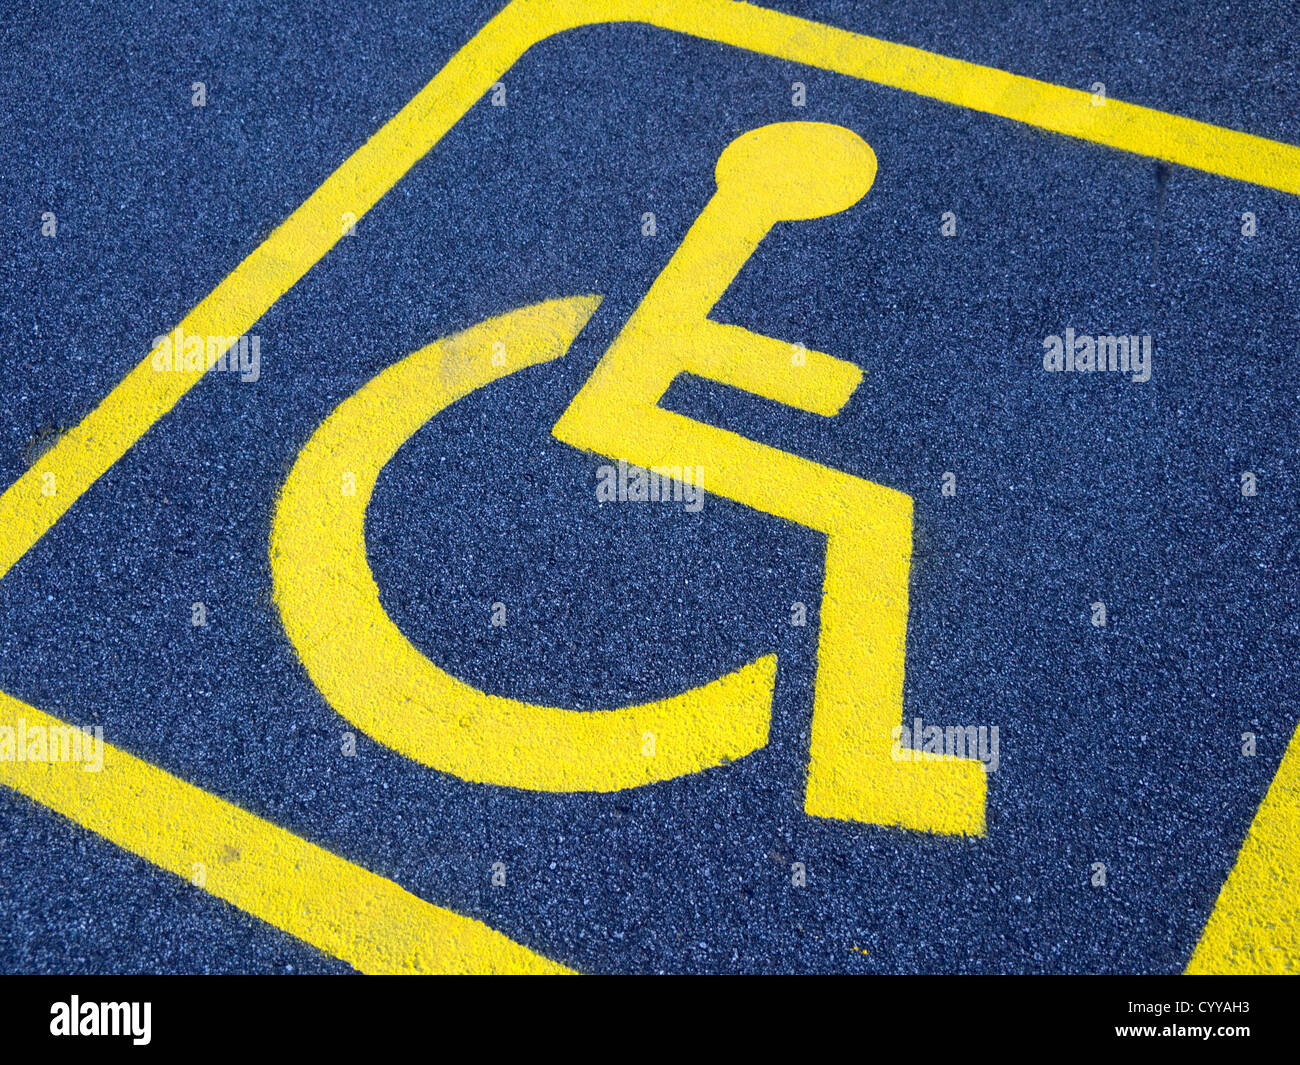 Disabled parking space sign - Stock Image